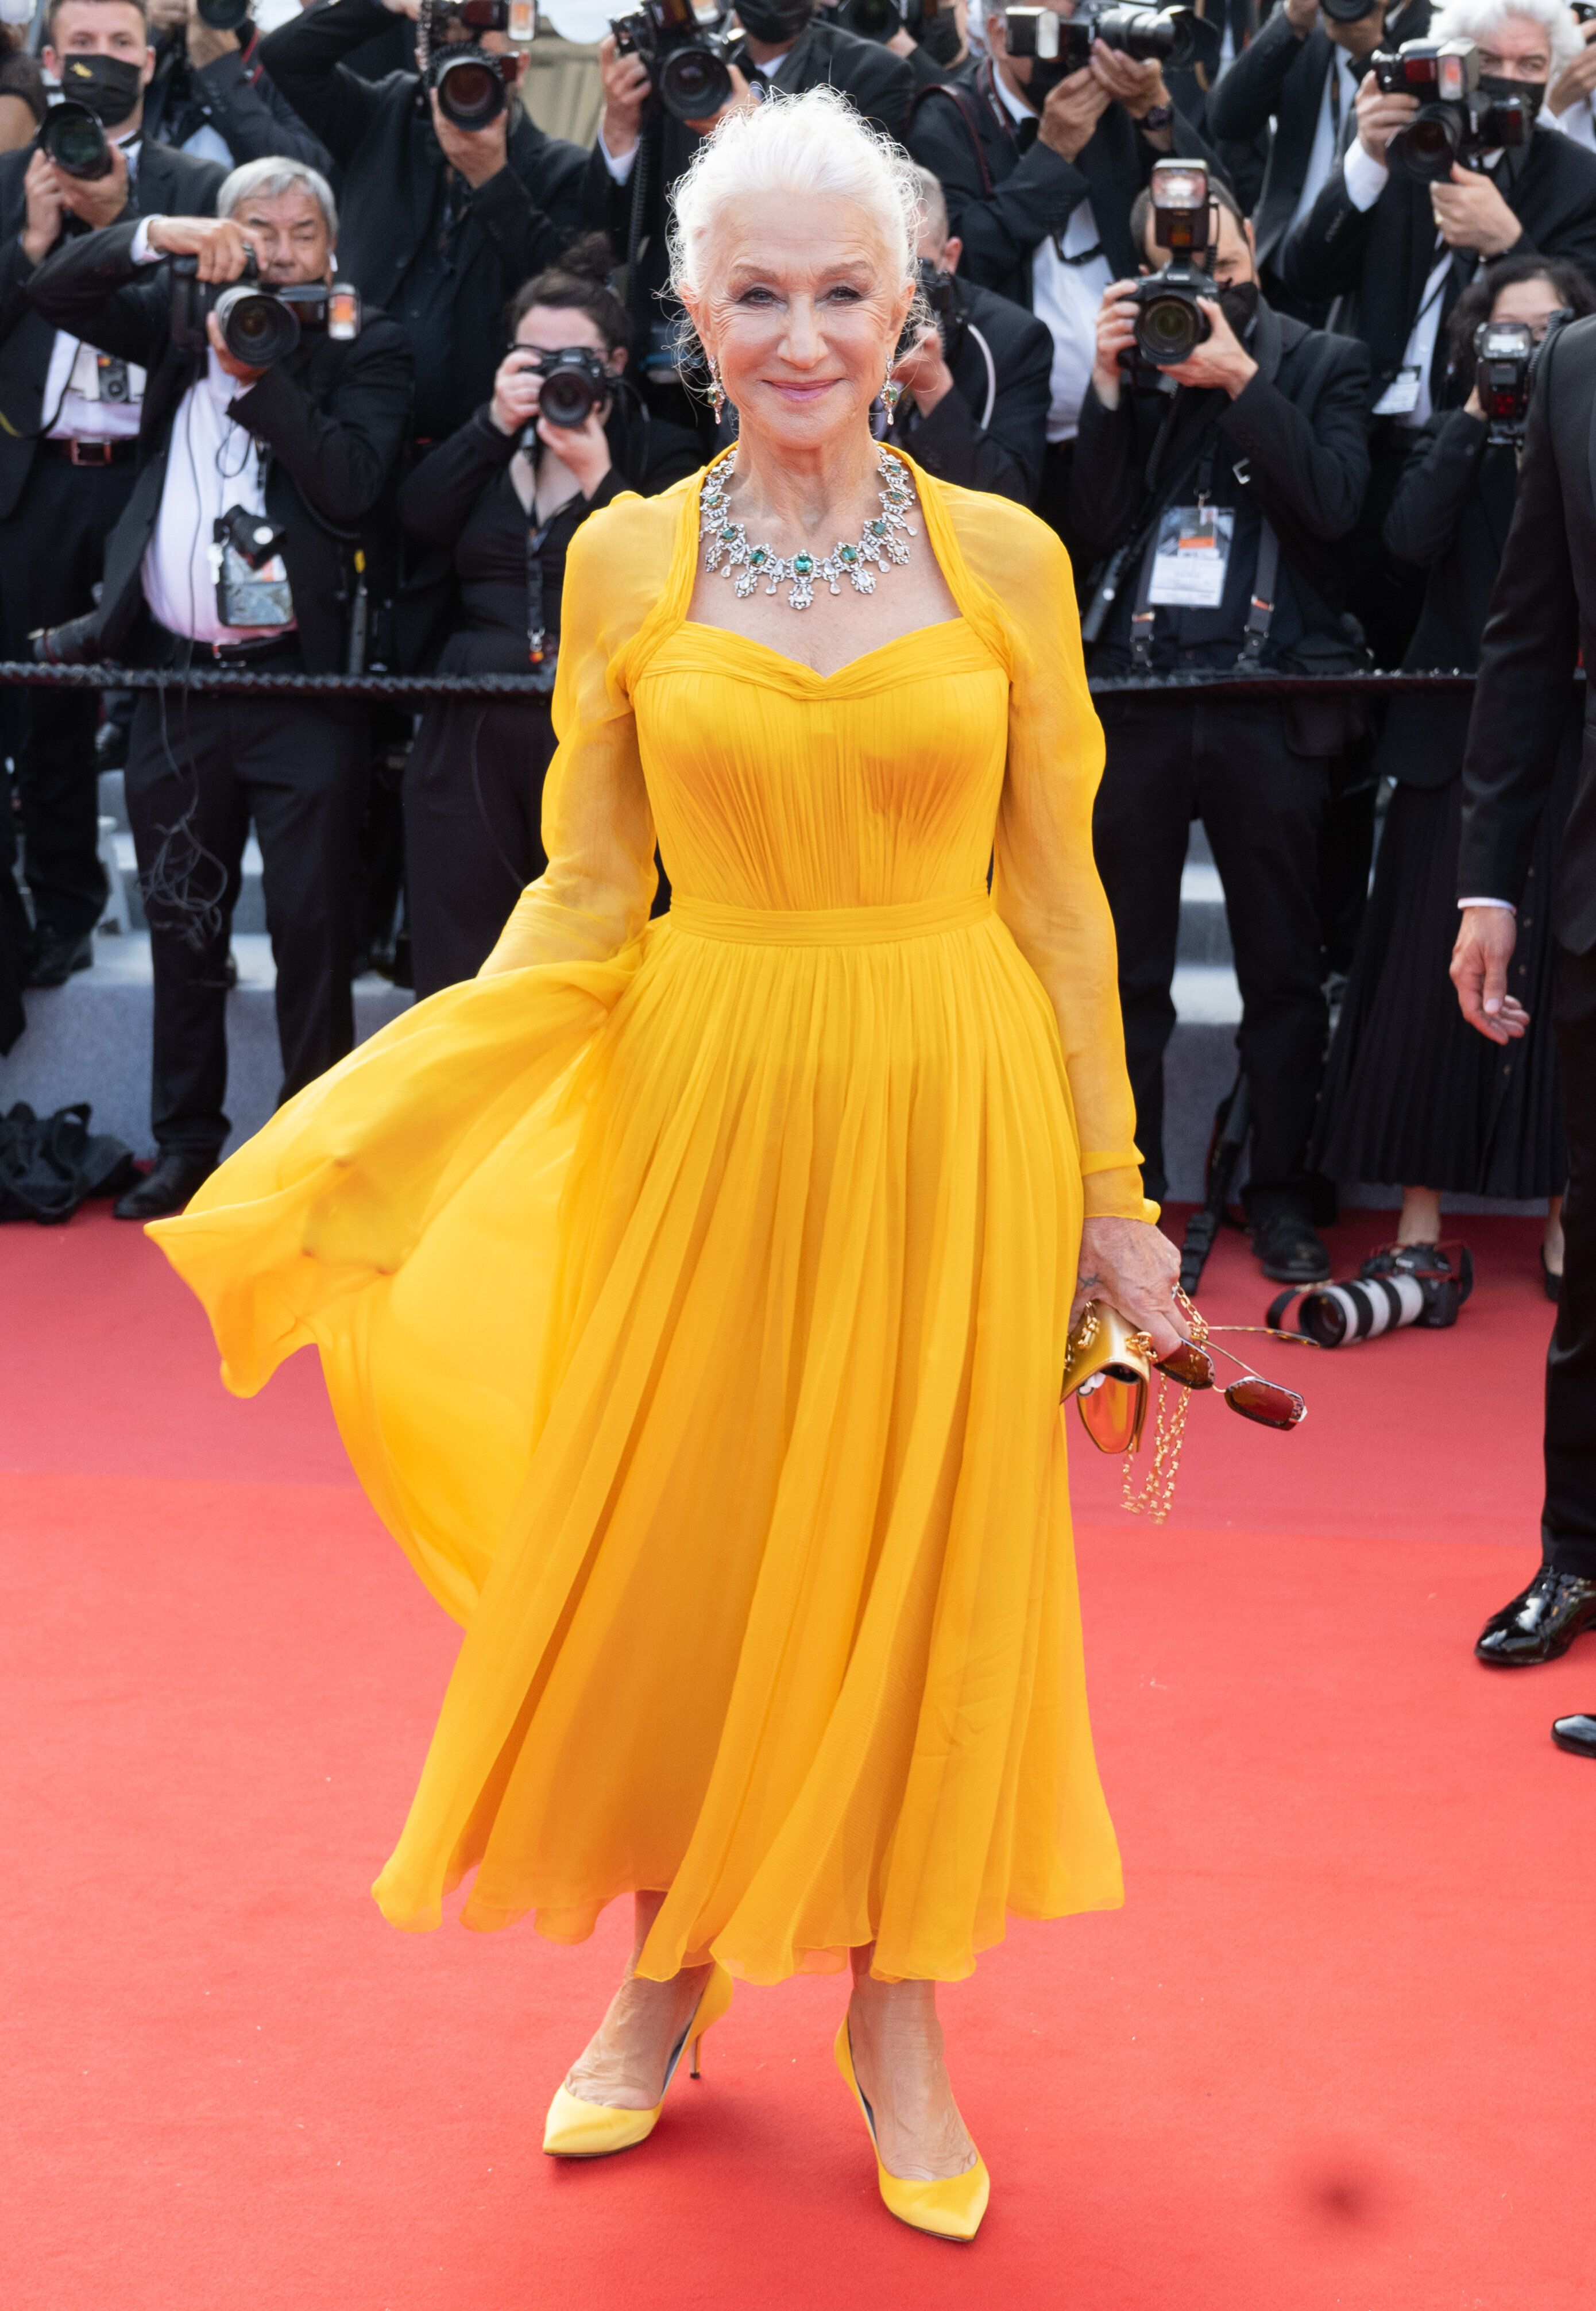 Helen Mirren attends the opening of the74th Annual Cannes Film Festival in Dolce & Gabbana gown.